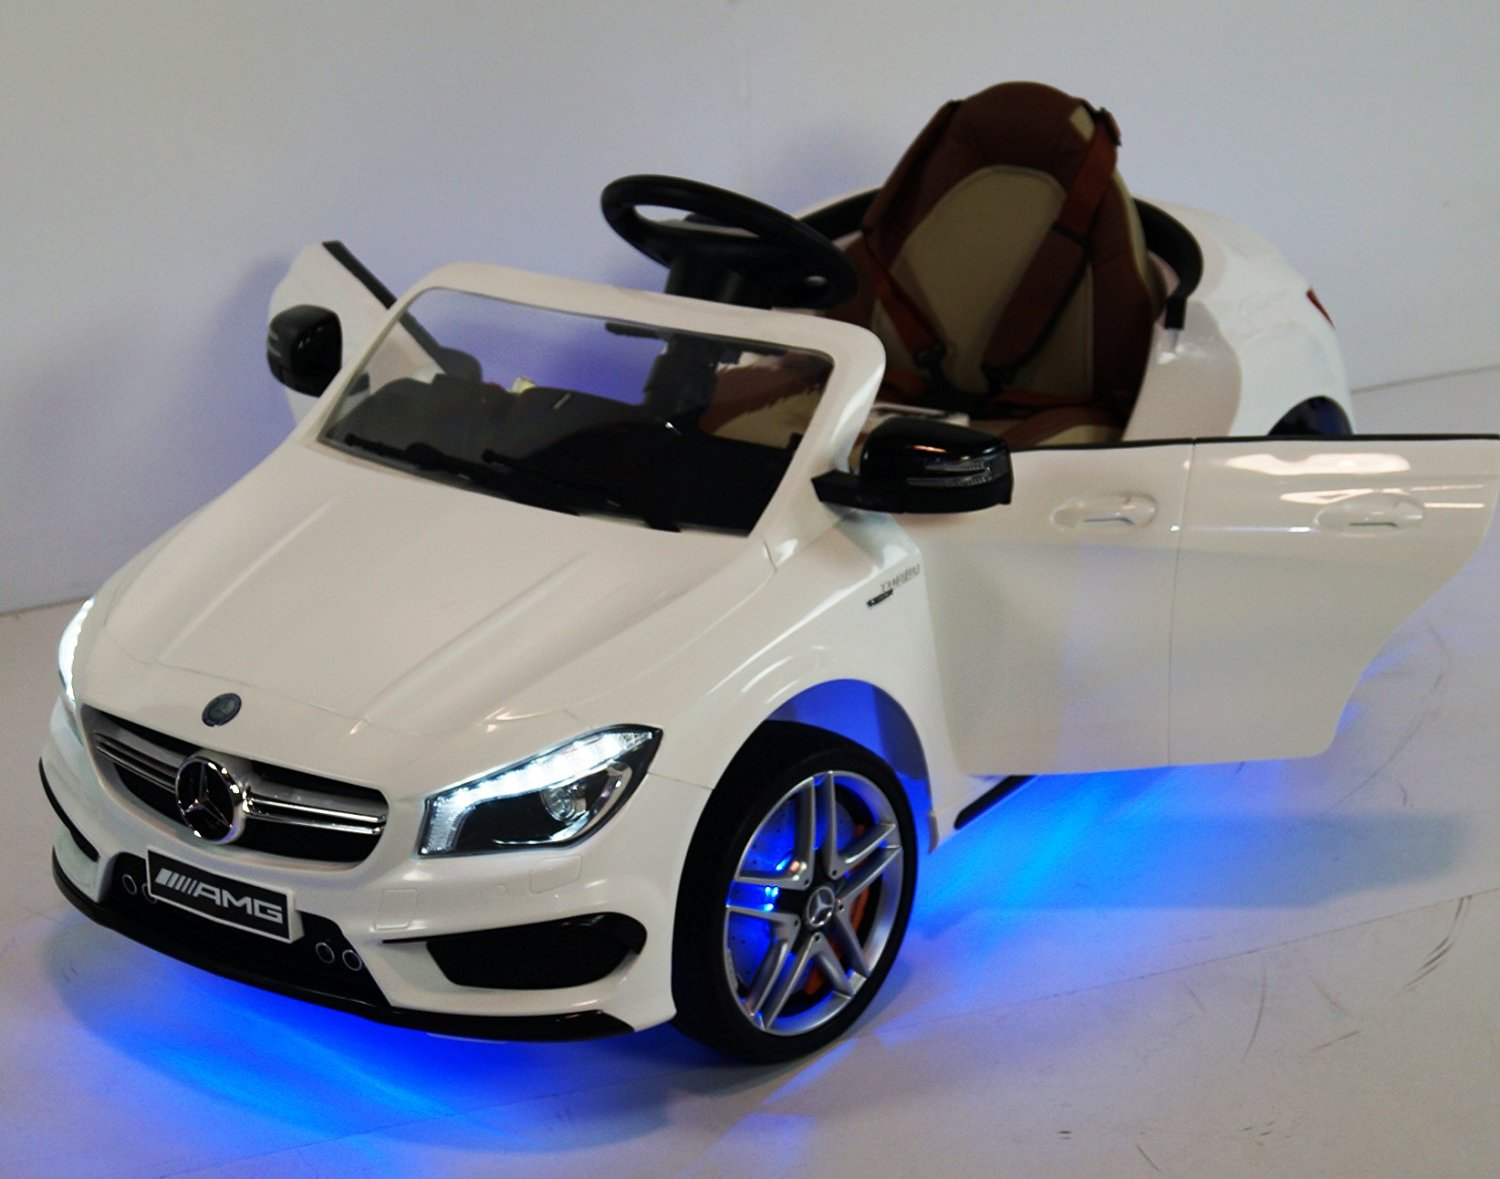 Newest Exclusive Edition Ride on Car/ Toy Mercedes-Benz, Music, Lights, MP3 - Licensed Model for Boys, Girls, Kids with Remote Control